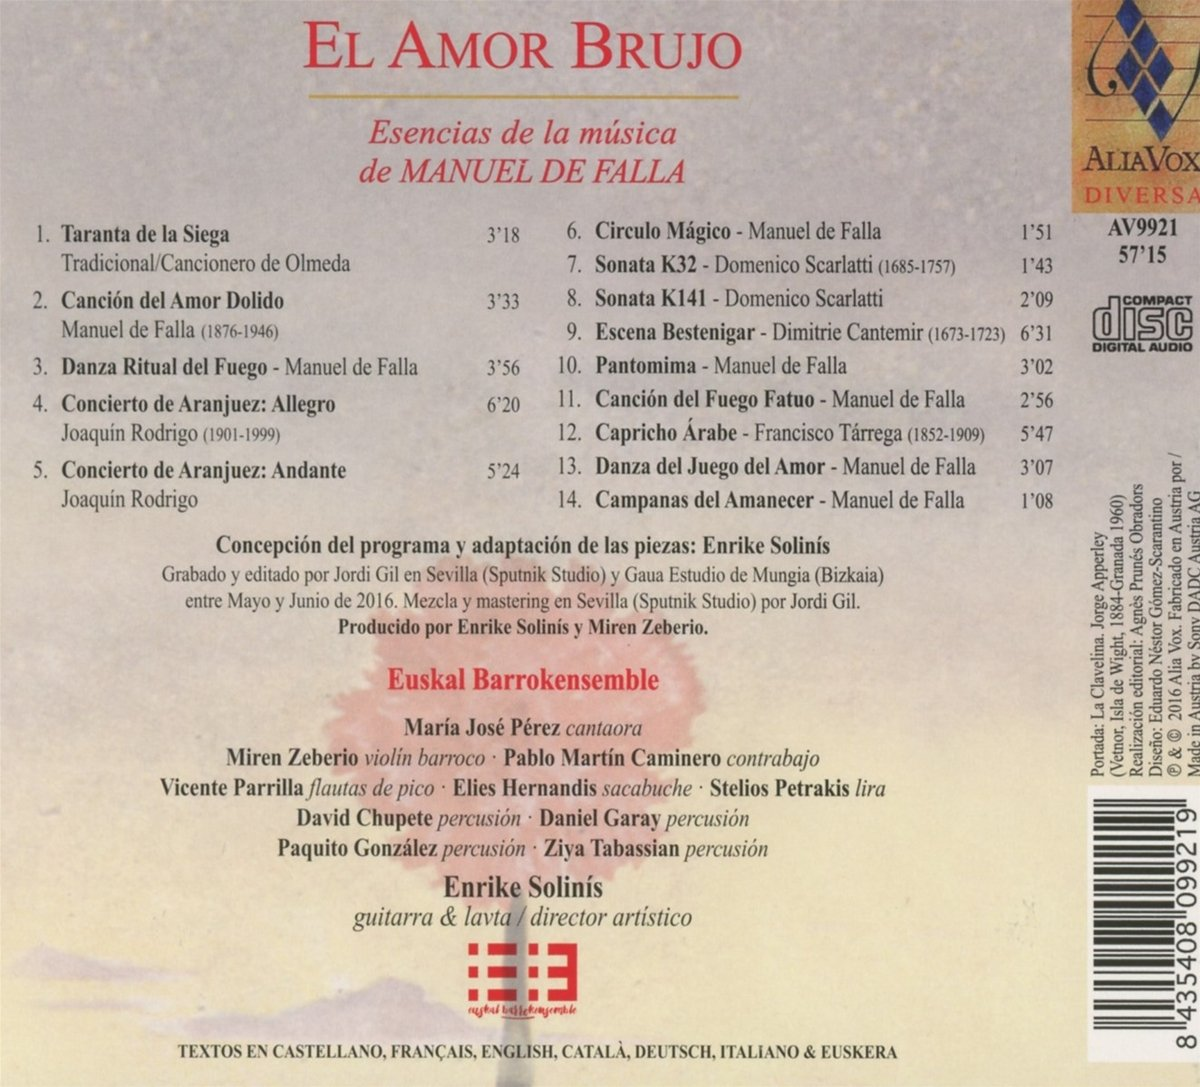 Euskal Barrokensemble, Enrike Solinís, Various - El Amor Brujo - The ...